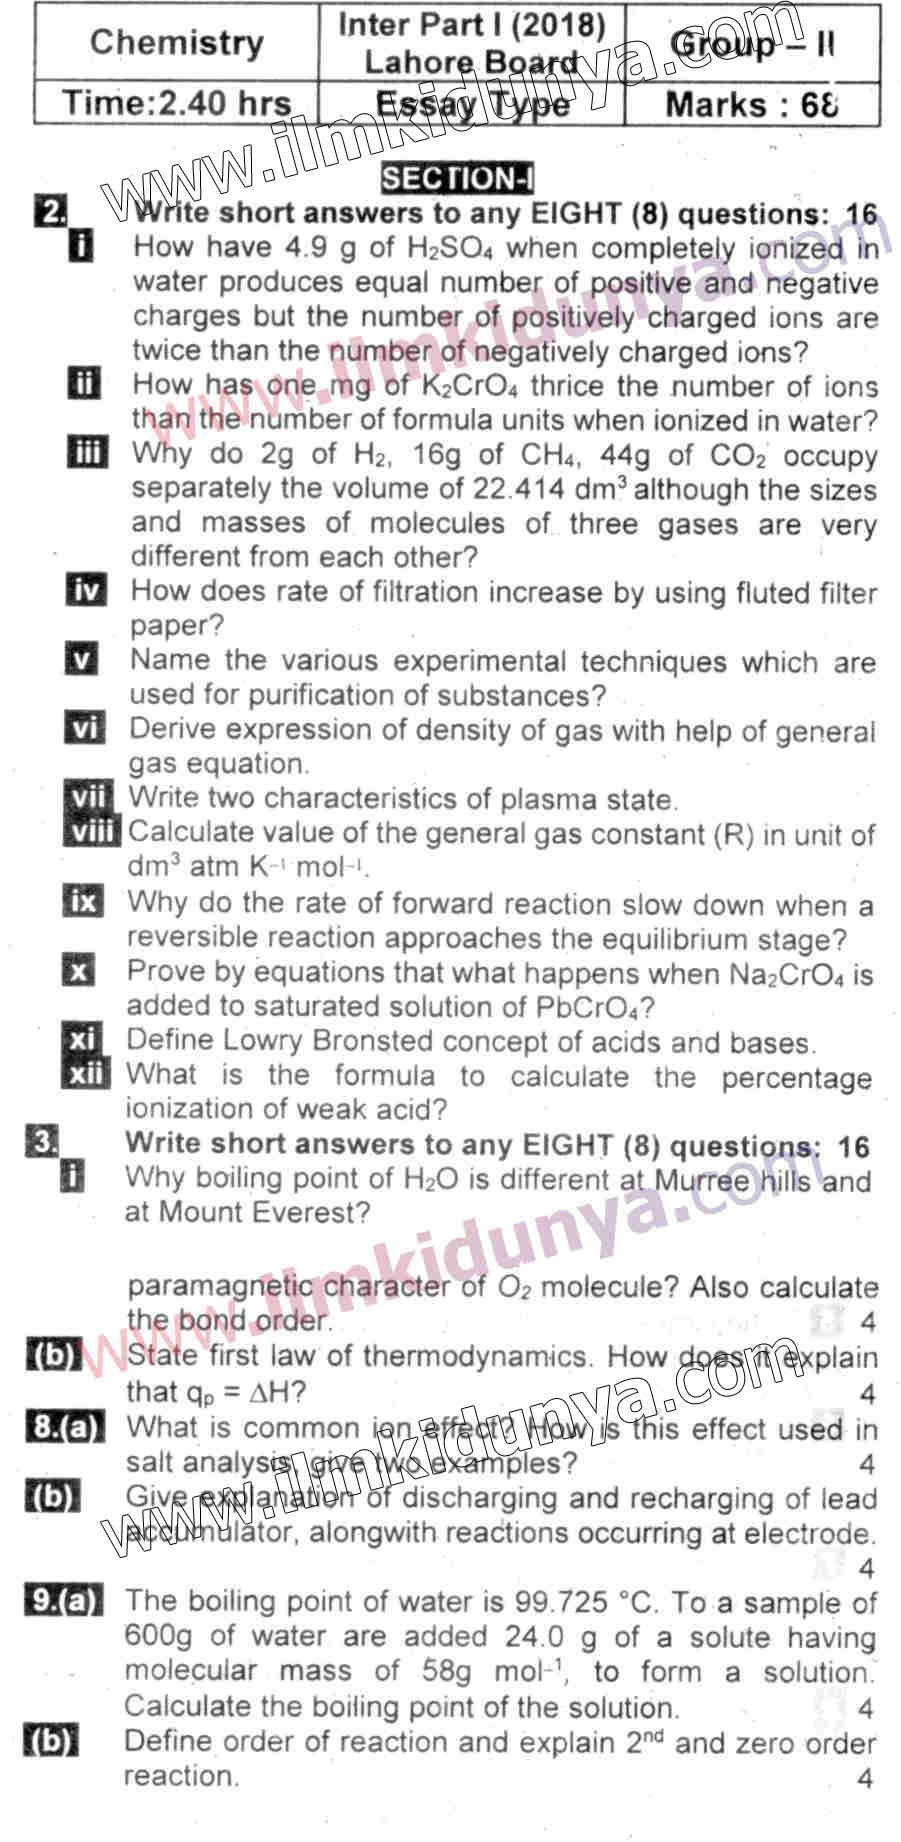 Past Papers Lahore Board 2018 Inter Part 1 Chemistry Group